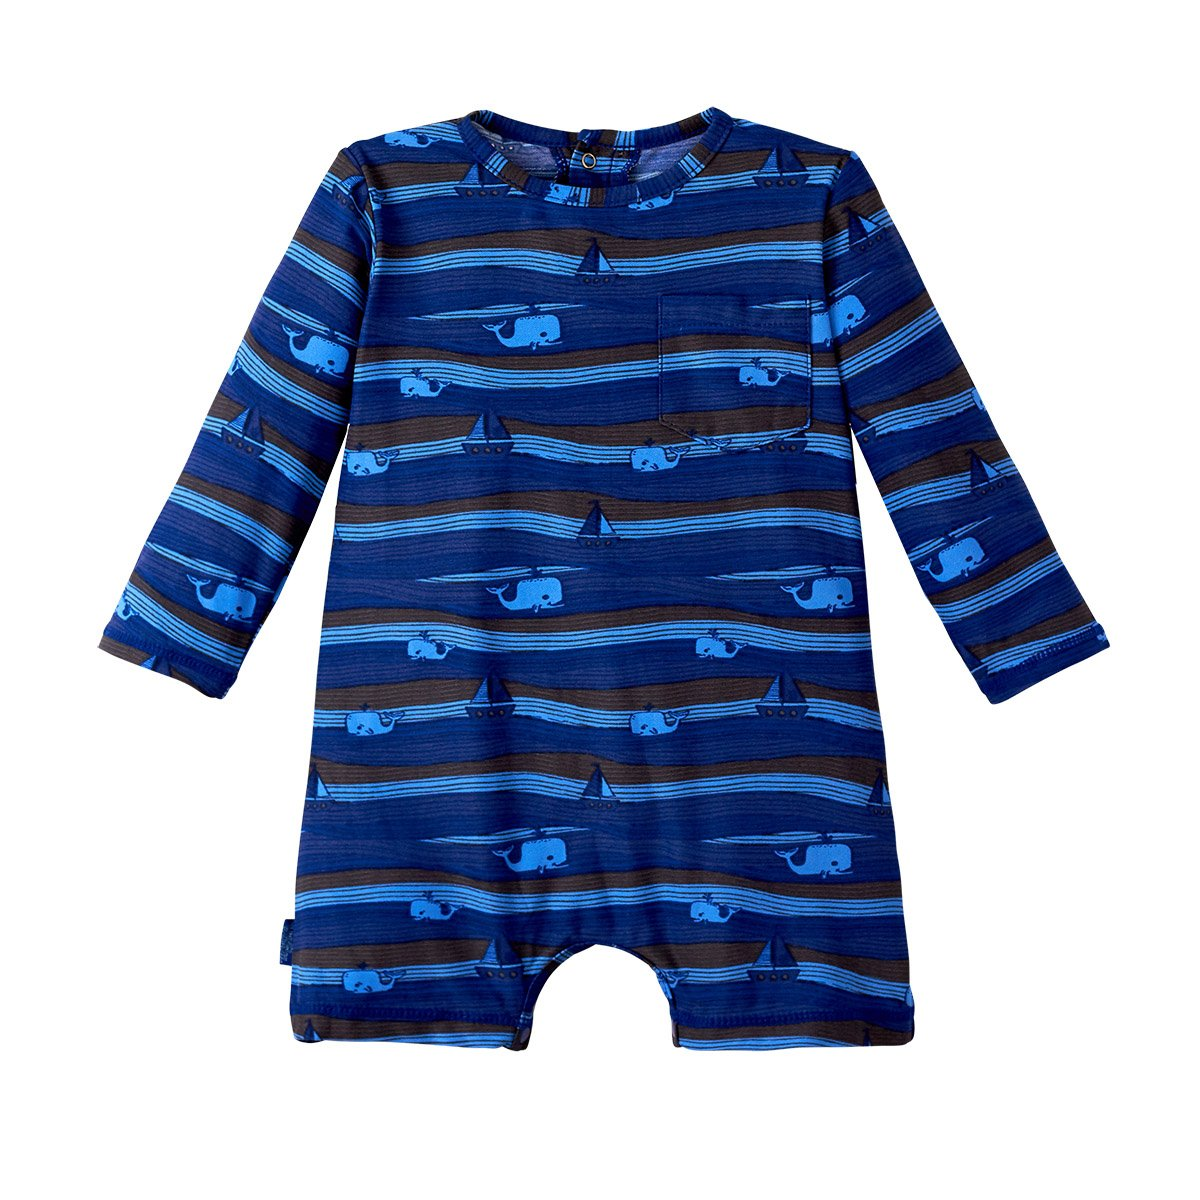 UV SKINZ UPF 50+ Baby Boys UV Sunzie Navy Blue Rough Seas